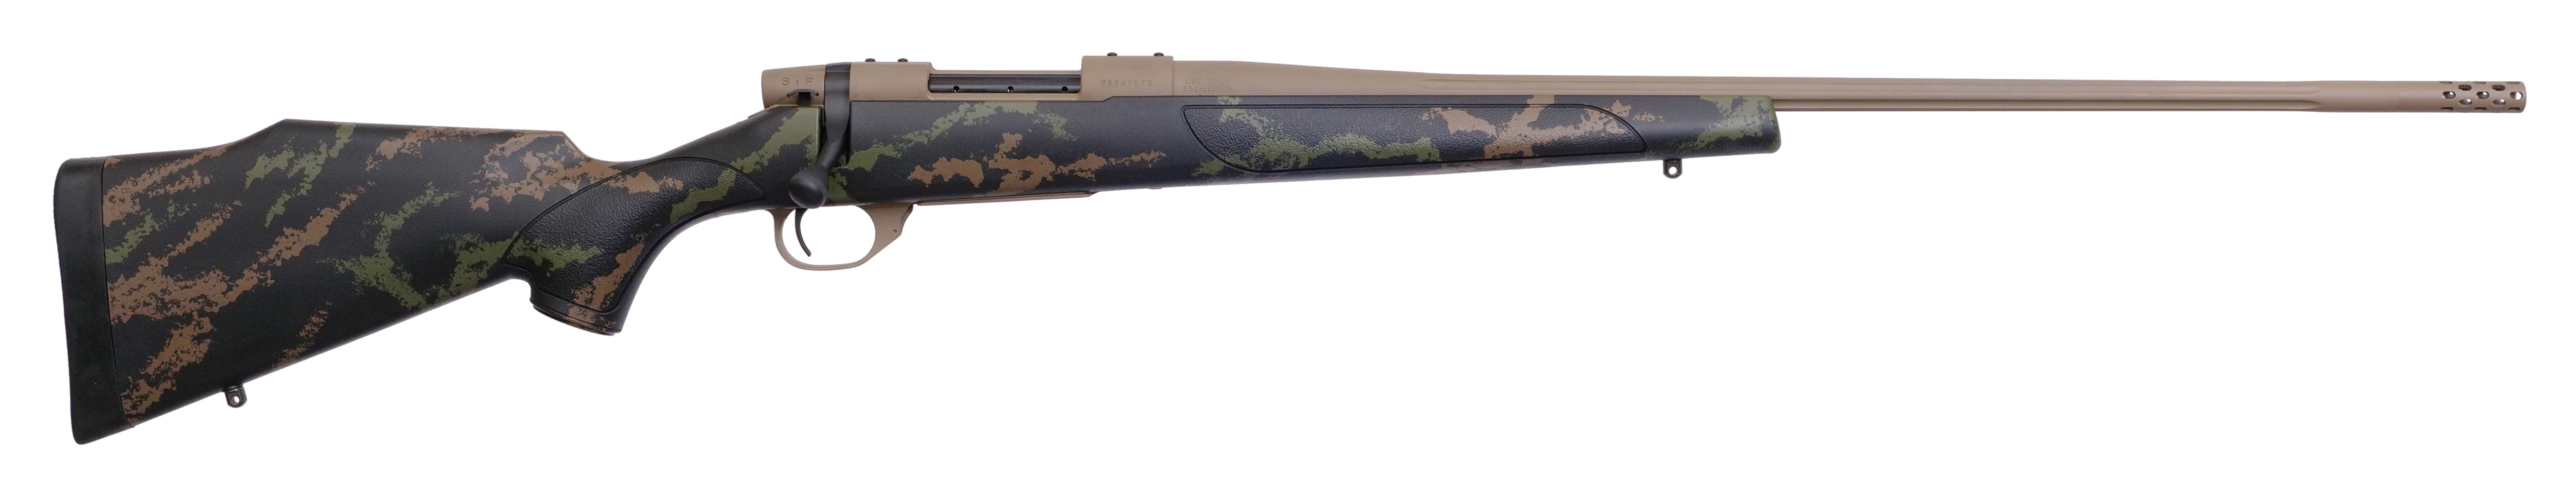 Weatherby VHC653WR8B Vanguard High Country 6.5x300 Wthby Mag 3+1 26